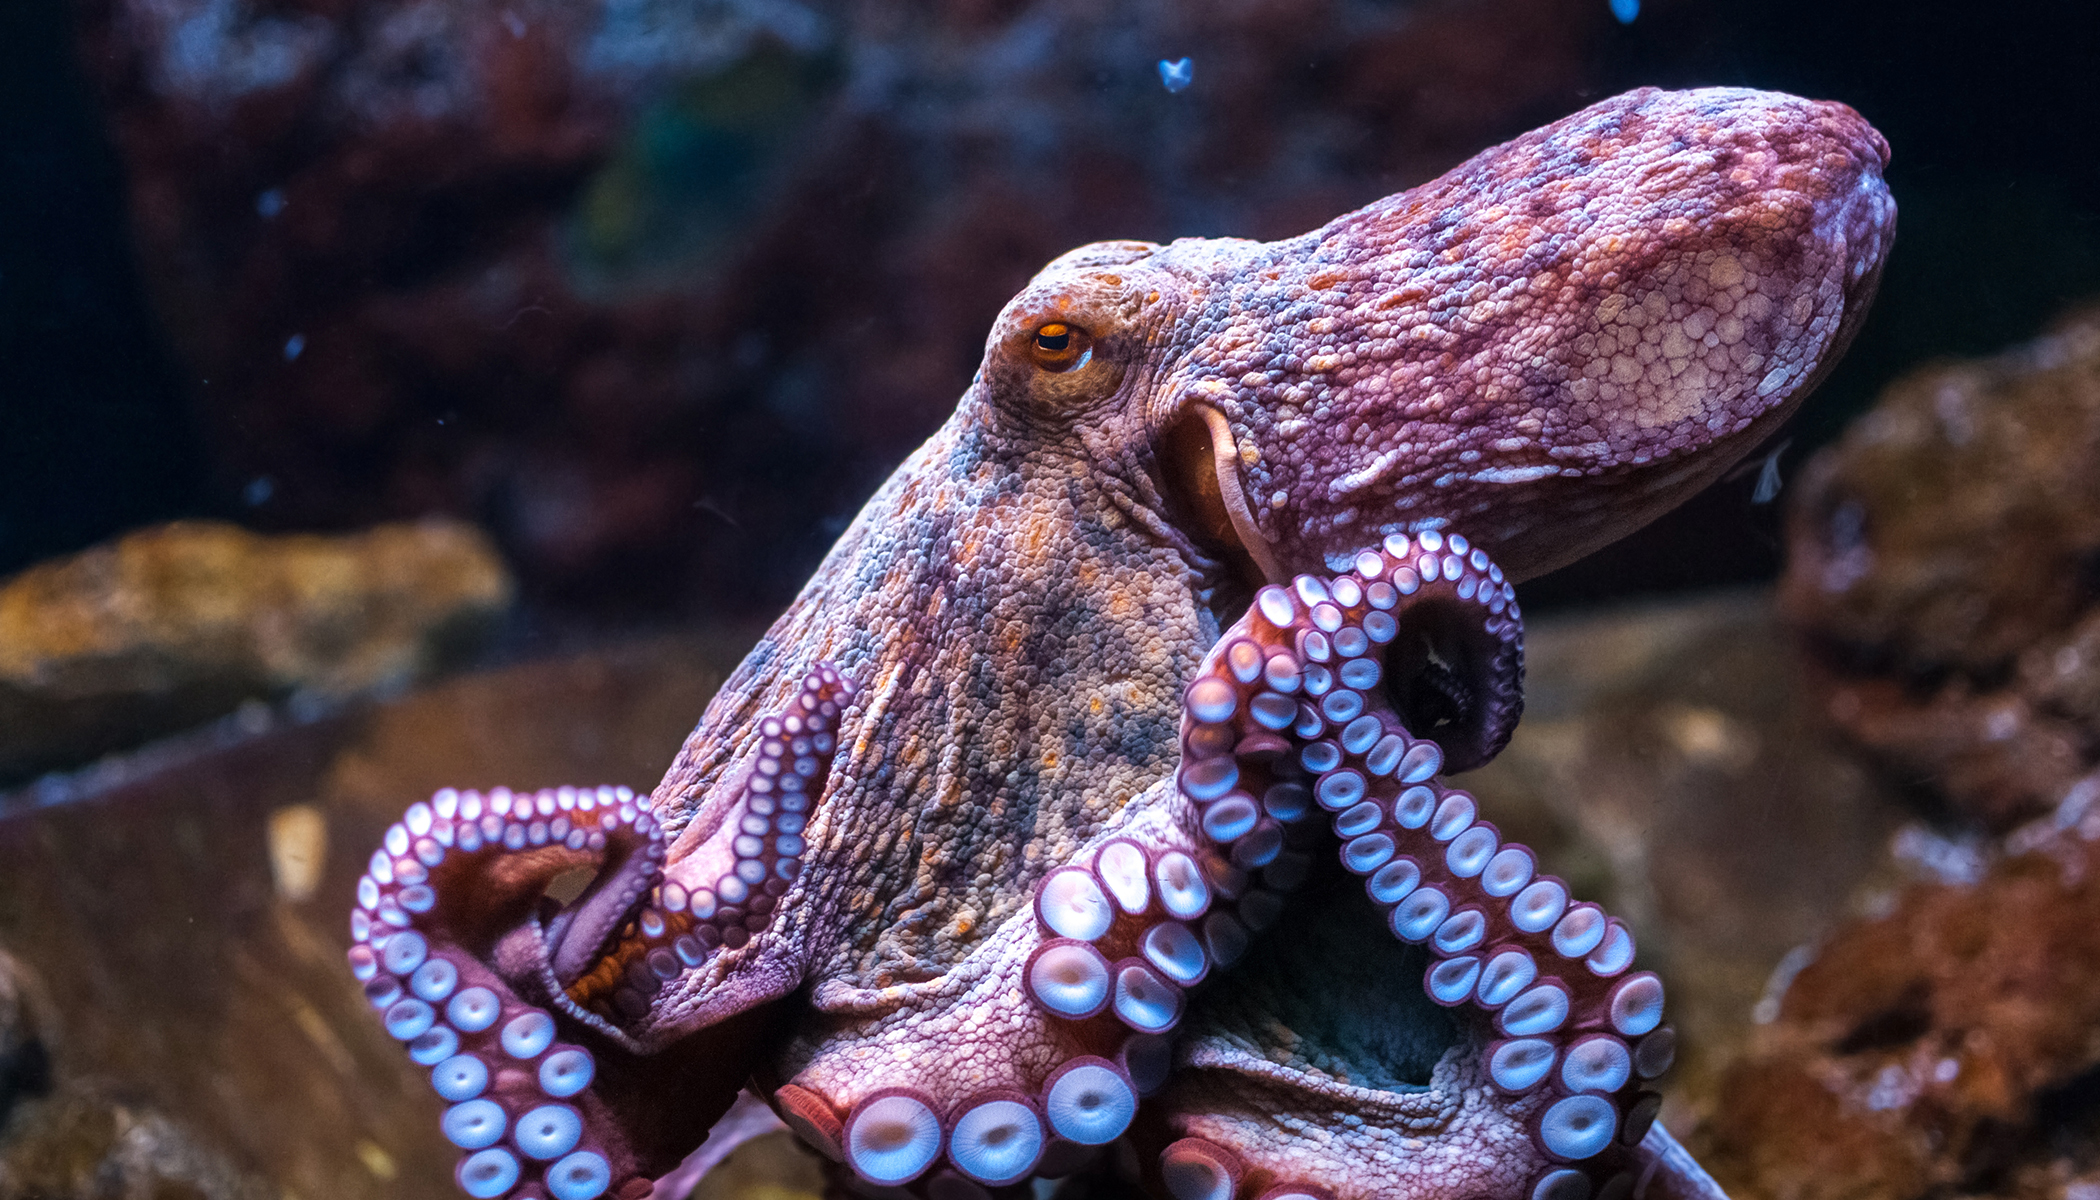 Video: Stealthy Octopus Leaps Out of Tidepool, Ambushes, Eats Crab, Amateur Footage Shows